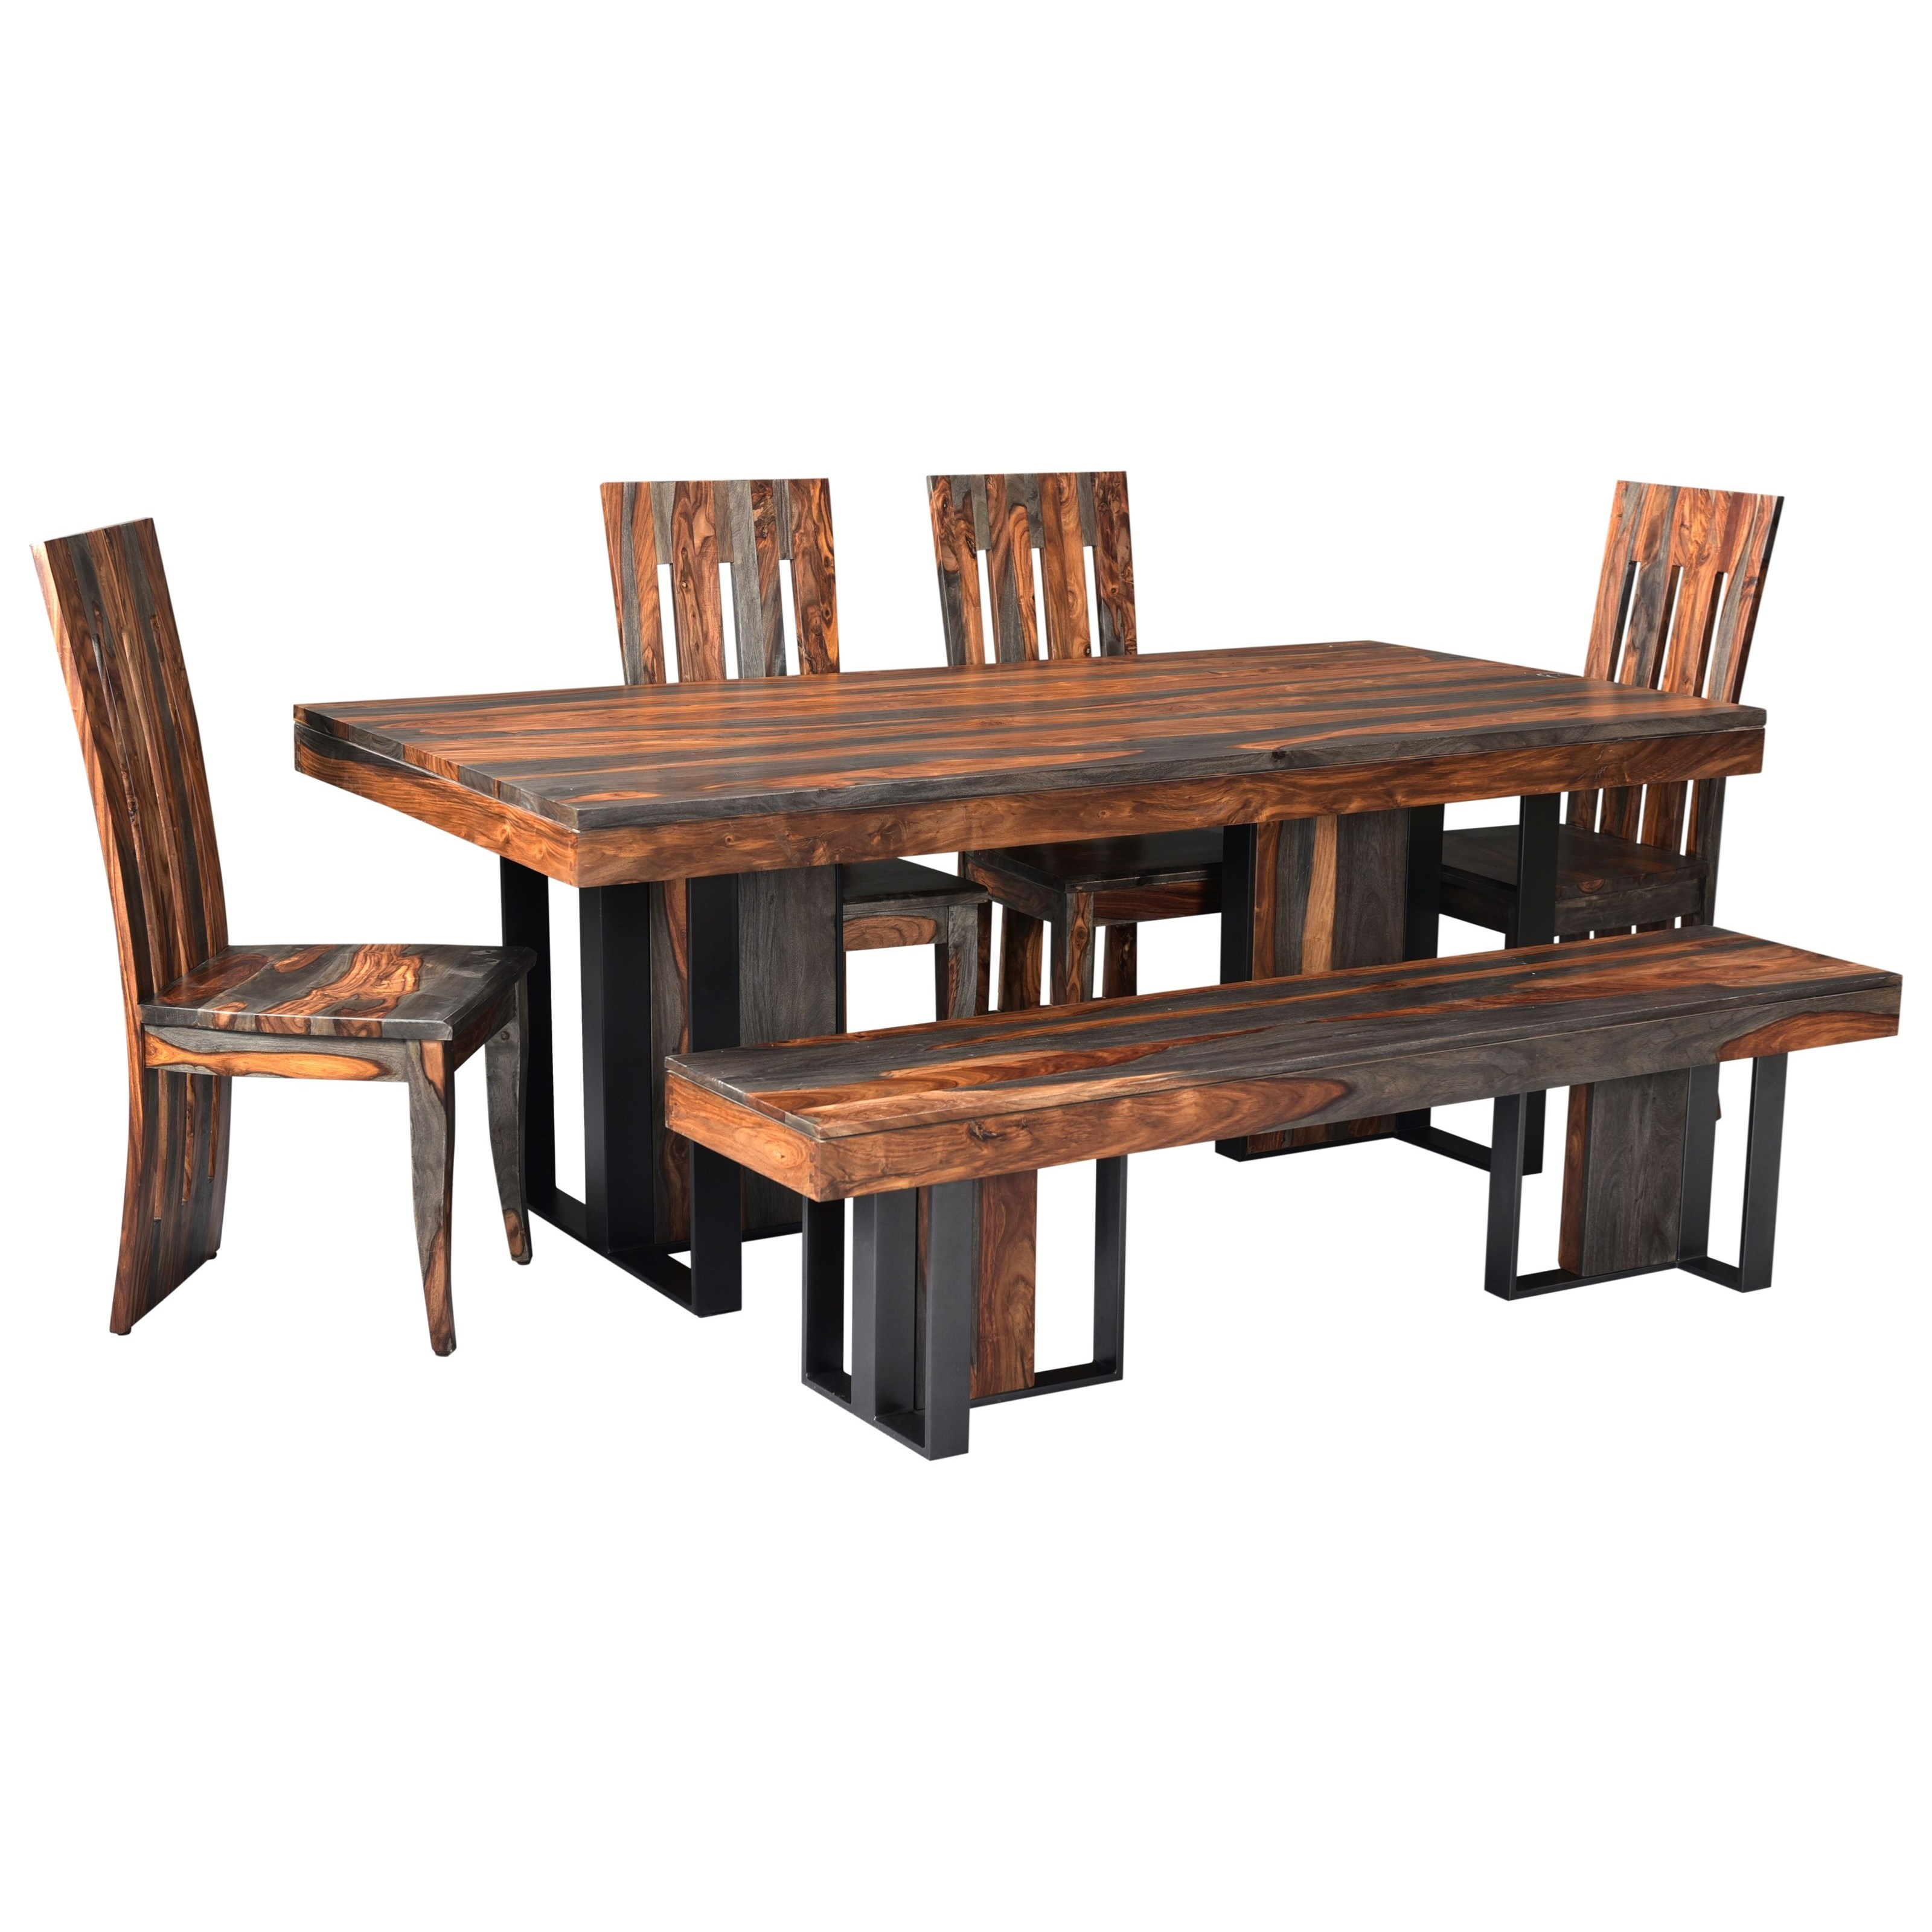 Sierra Table and Chair Set with Bench by Coast to Coast Imports at Johnny Janosik